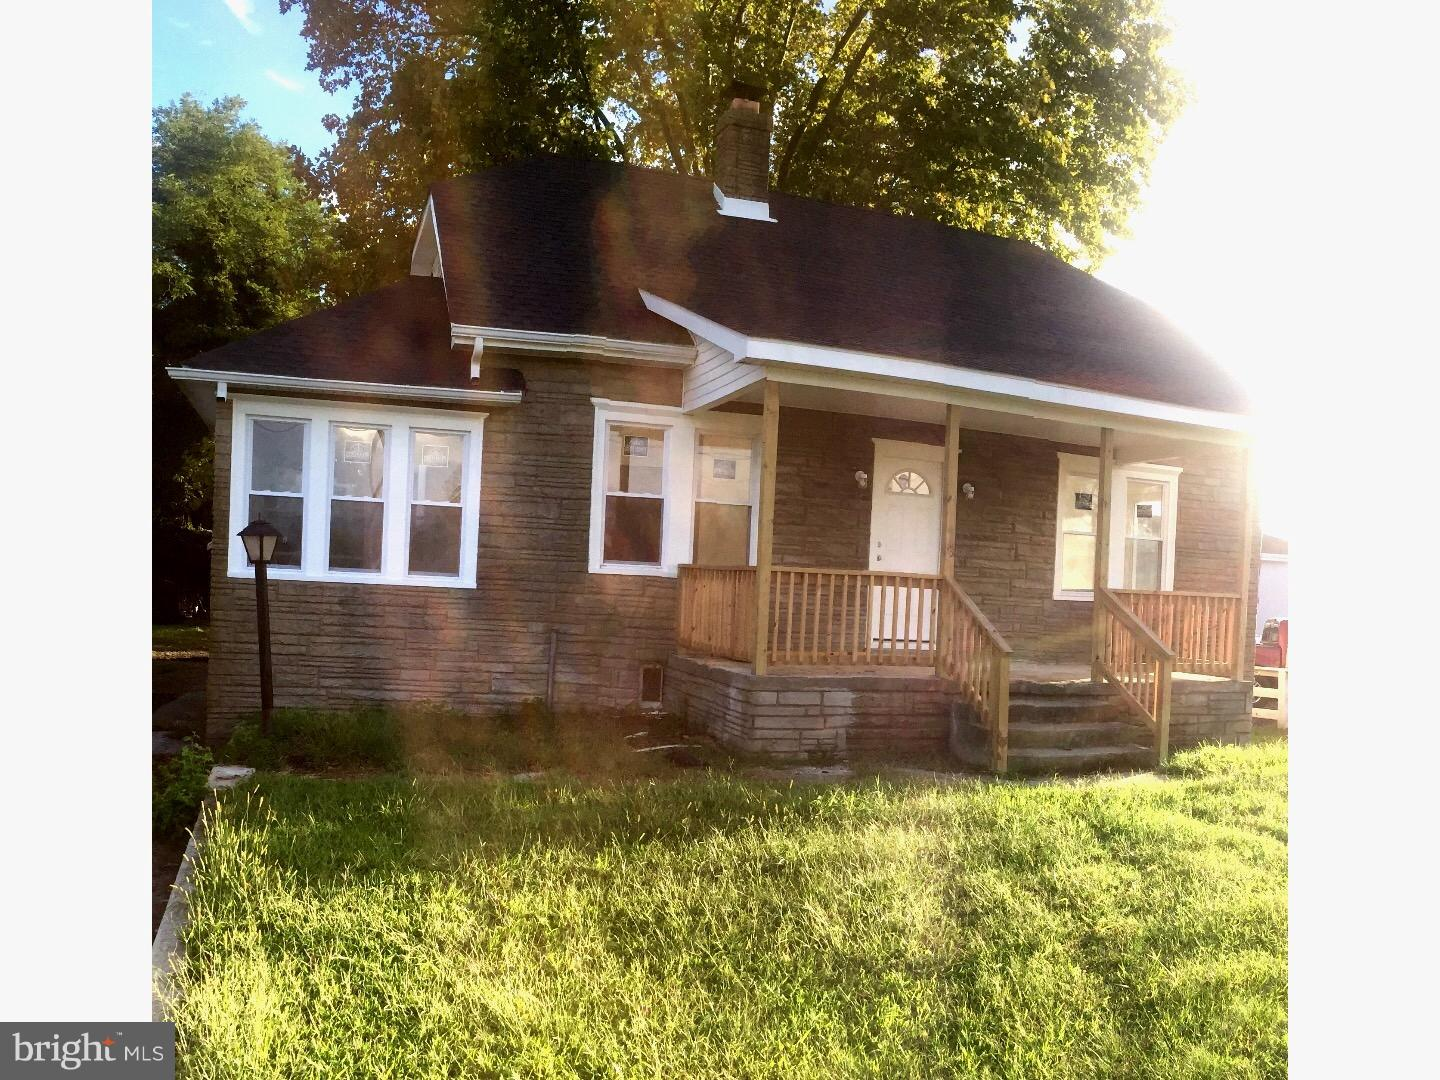 Single Family Home for Sale at 601 SALEM QUINTON Road Quinton, New Jersey 08079 United States